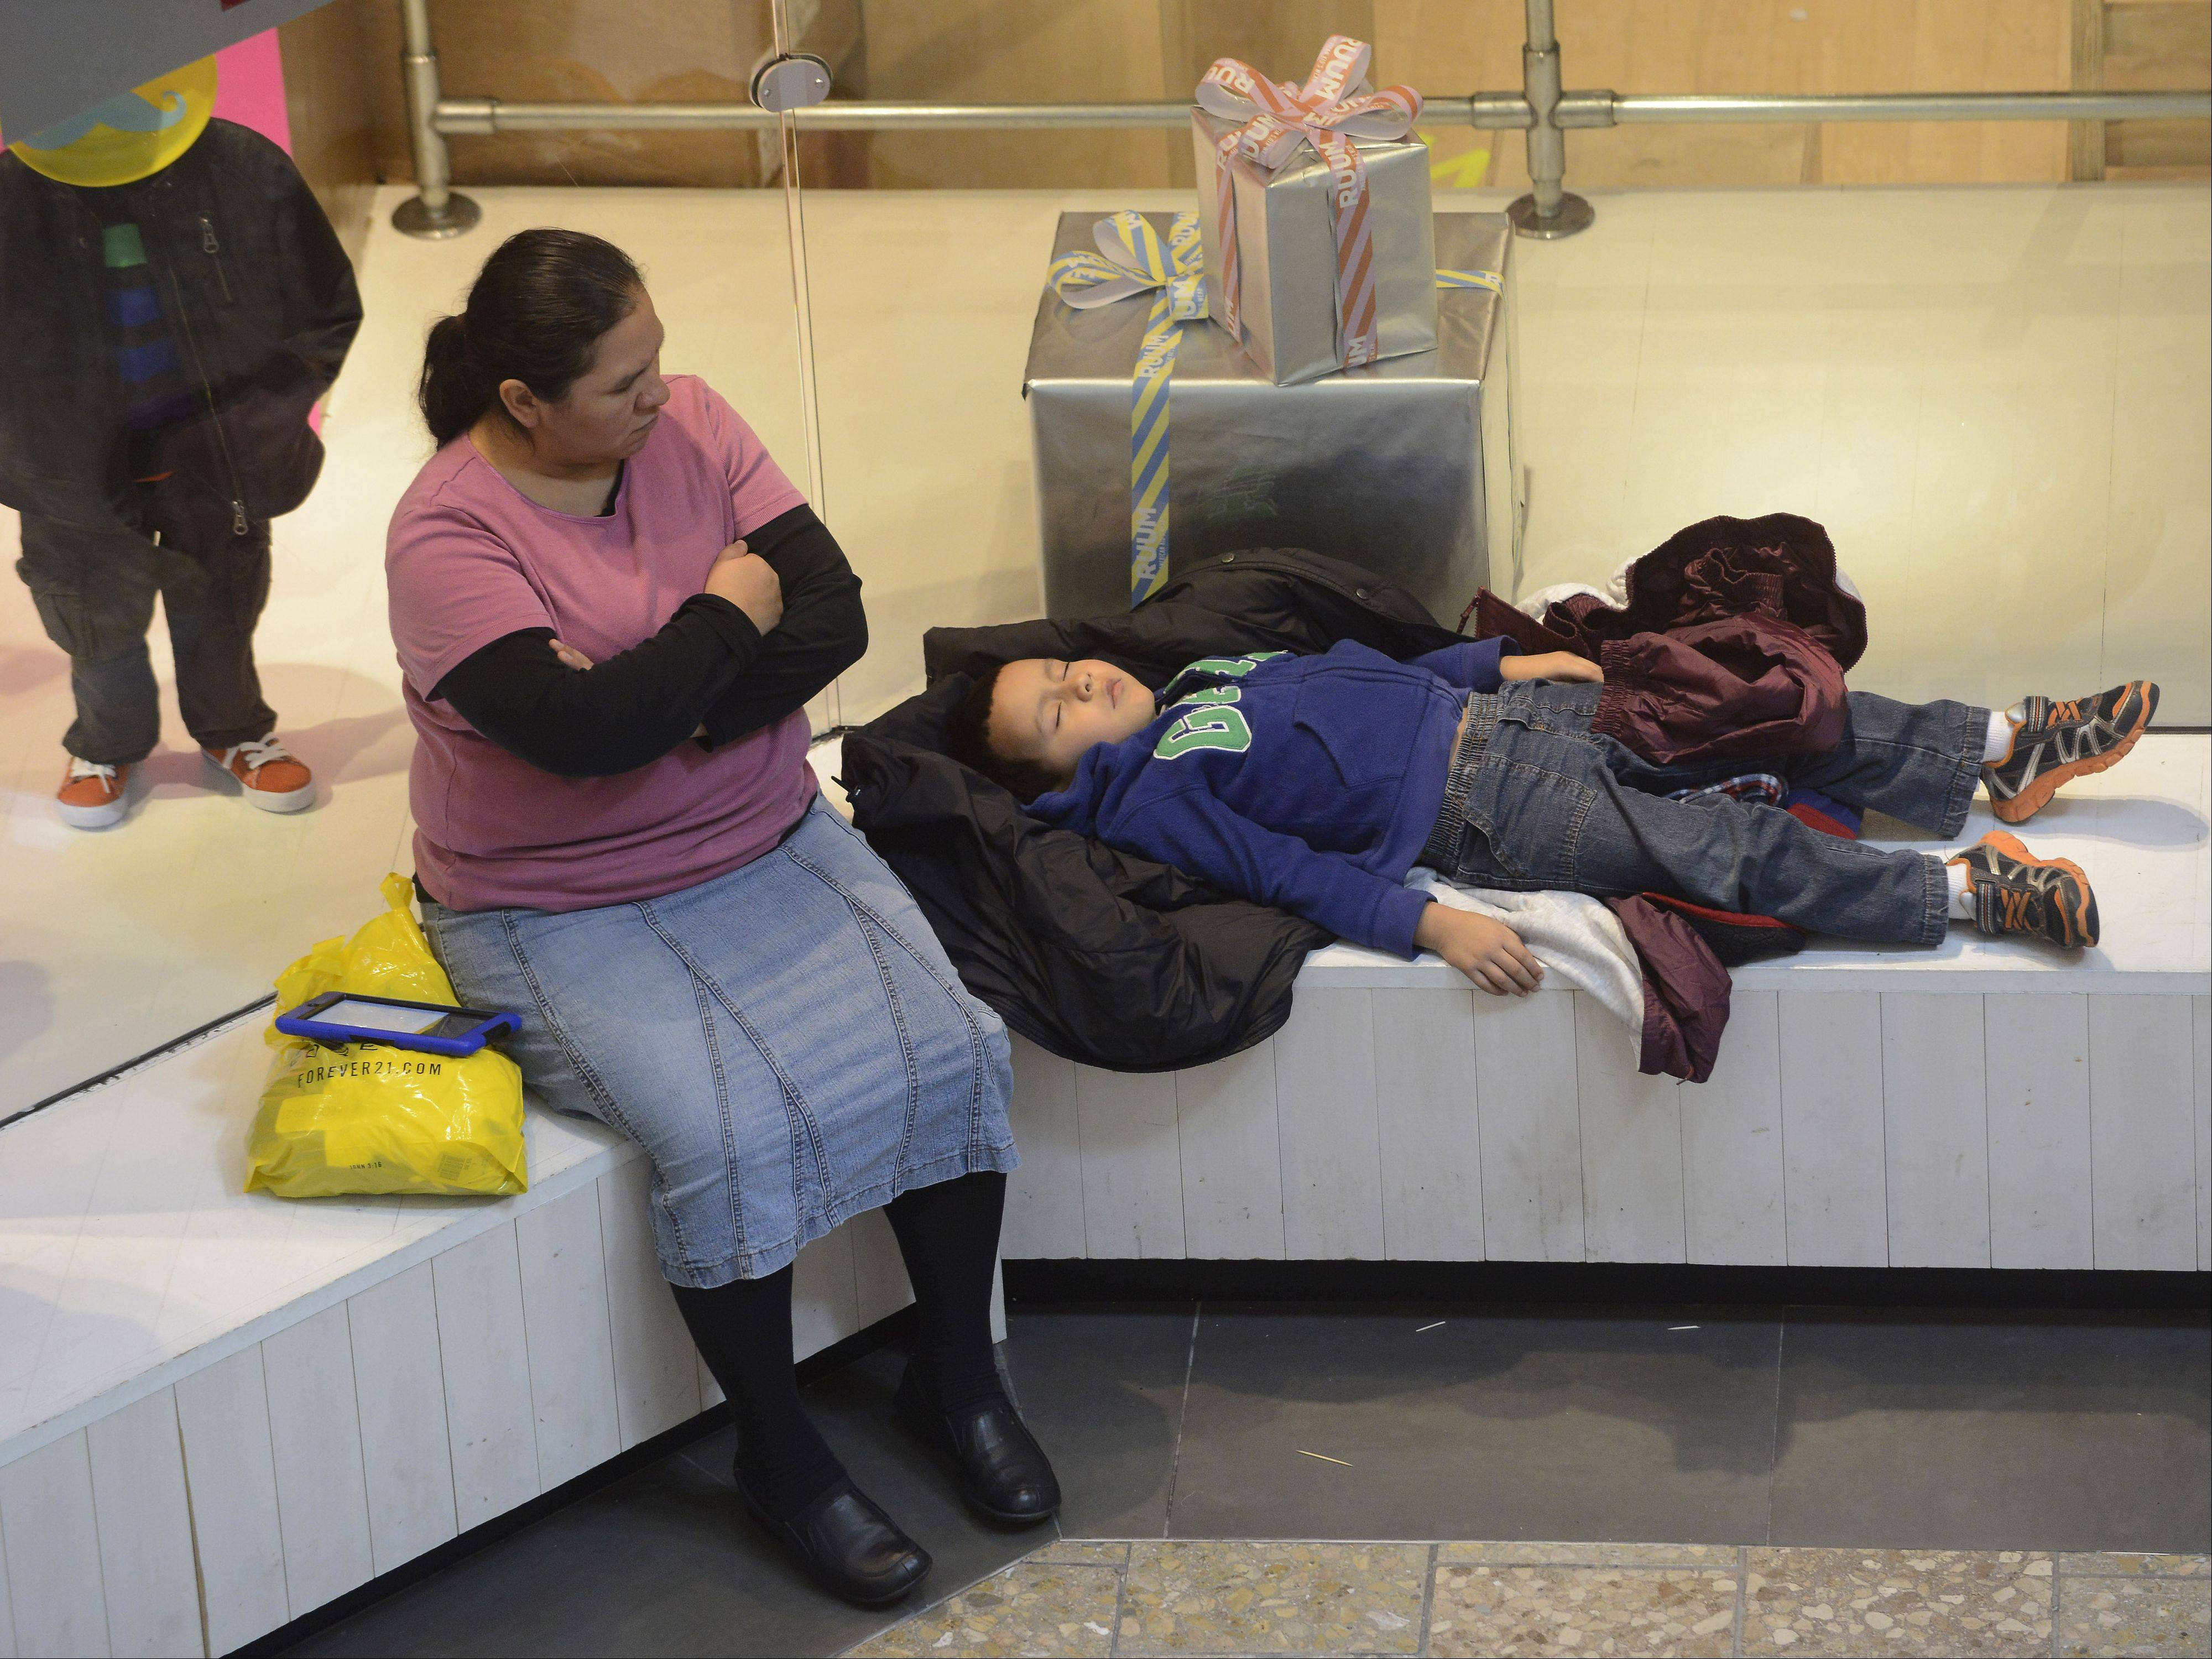 JOE LEWNARD/jlewnard@dailyherald.comSonia Estevane of Chicago gives her son Miguel, 5, a chance to rest while shopping Friday at Woodfield Mall in Schaumburg.